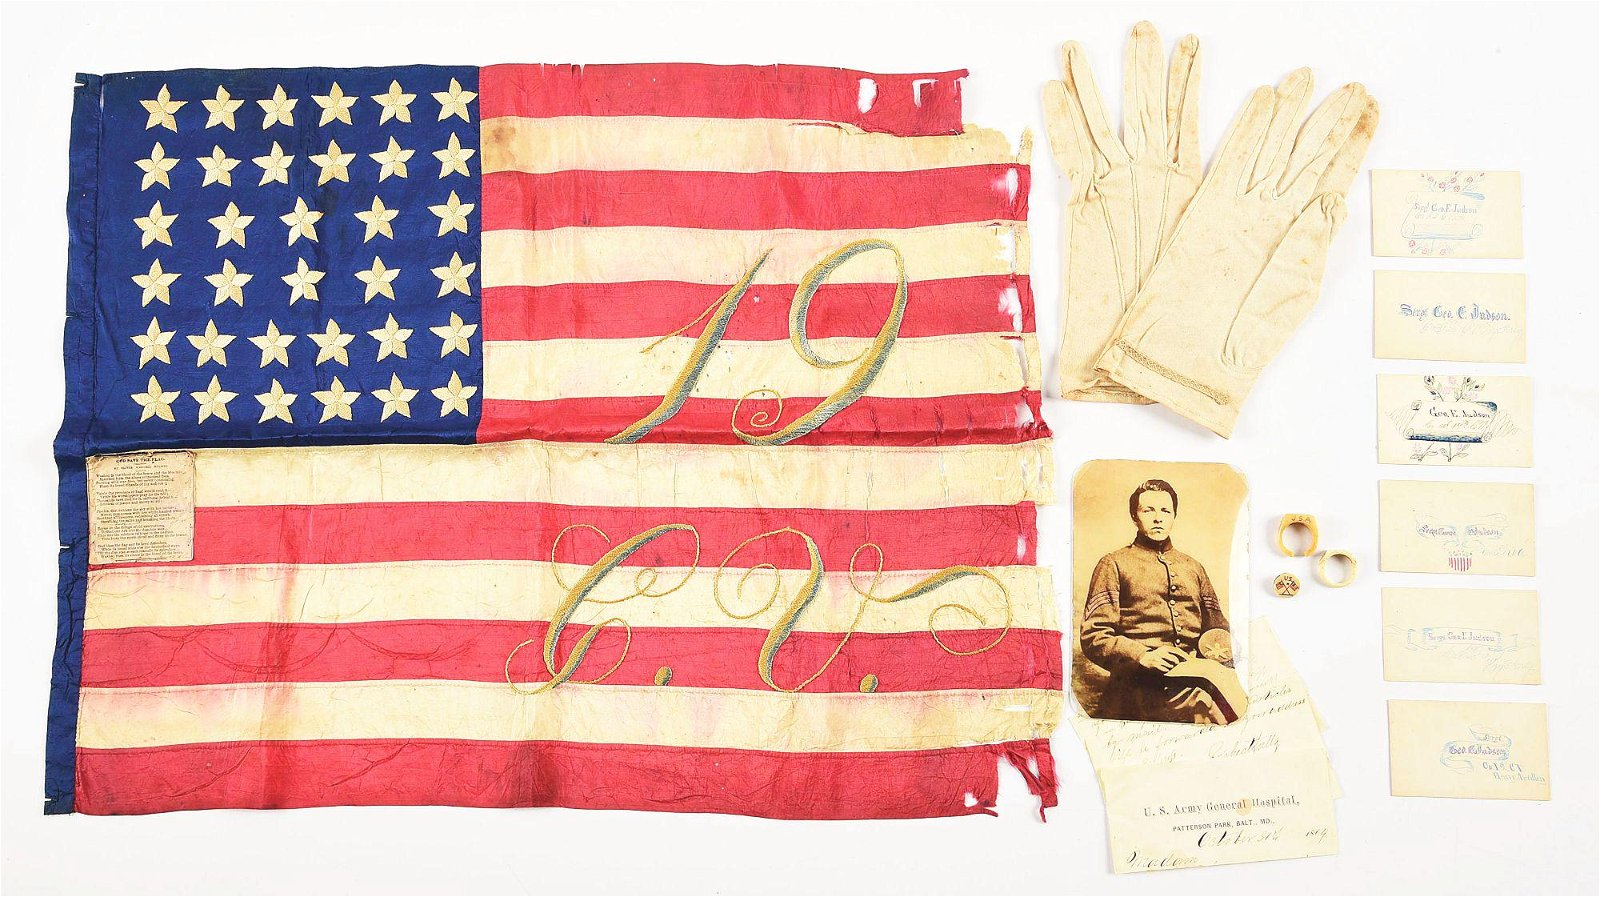 A RARE TIFFANY GUIDE FLAG OF THE 19TH CONNECTICUT &